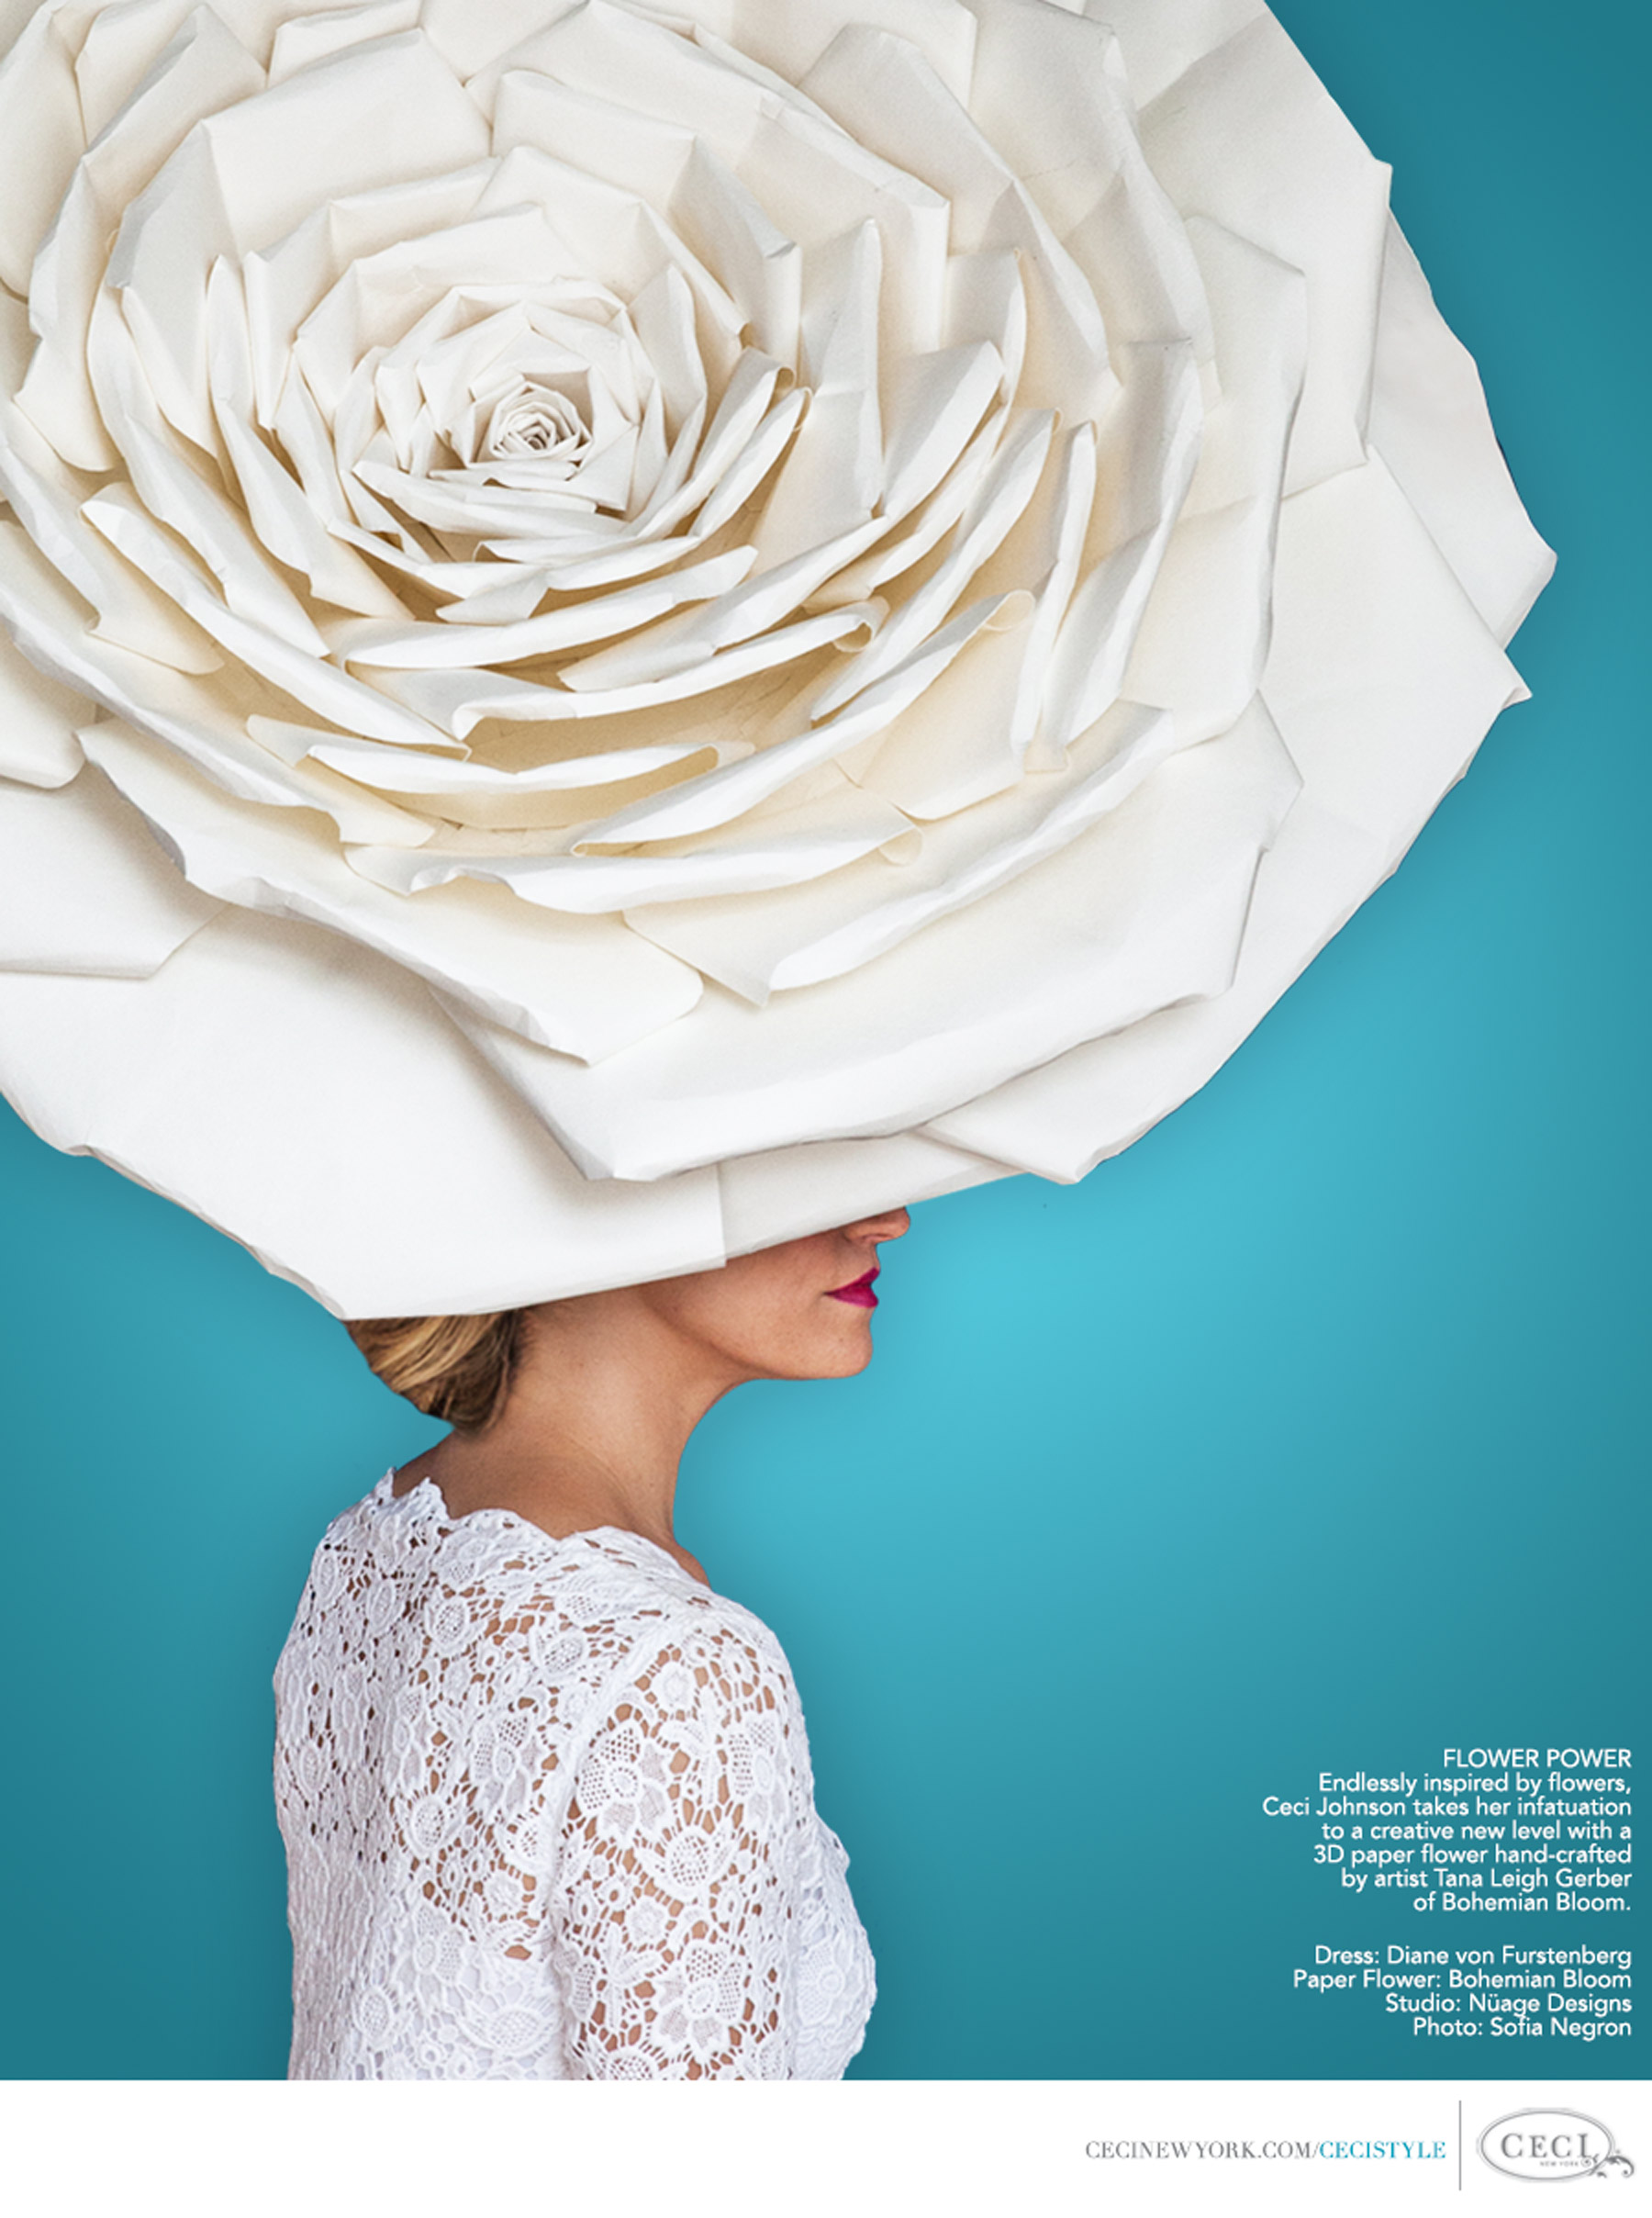 Ceci Johnson of Ceci New York - FLOWER POWER: Endlessly inspired by flowers, Ceci Johnson takes her infatuation to a creative new level with a 3D paper flower hand-crafted by artist Tana Leigh Gerber of Bohemian Bloom. Dress: Diane von Furstenberg. Paper Flower: Bohemian Bloom. Studio: Nuage Designs. Photo: Sofia Negron